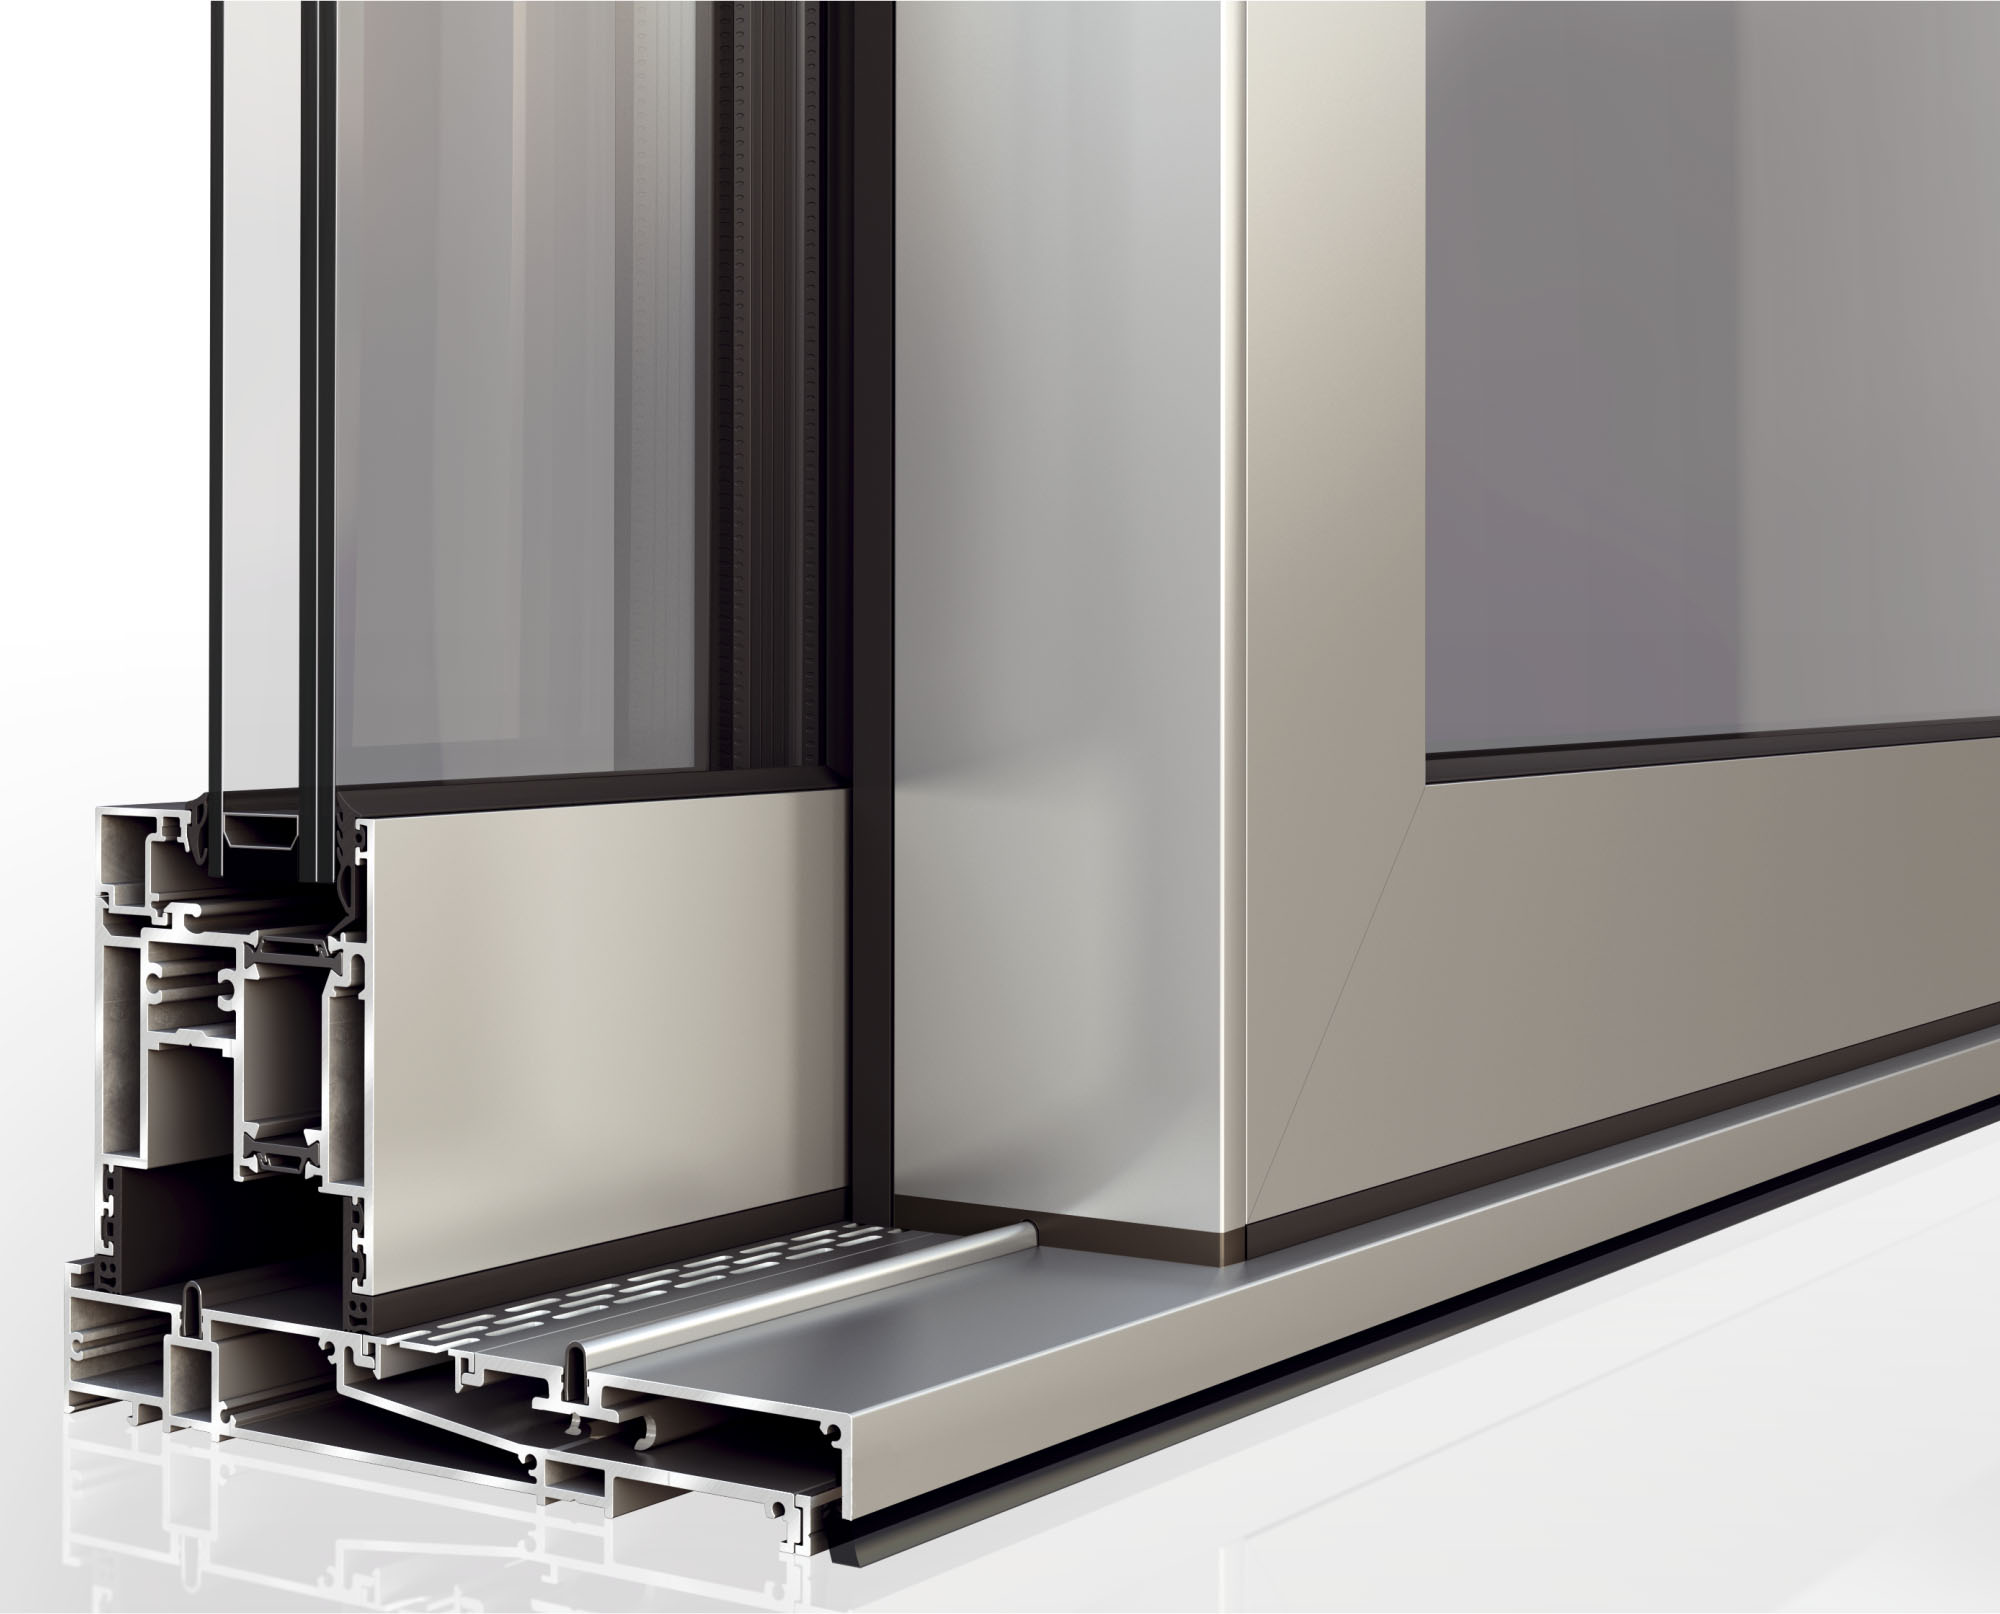 Prime Zahariou Products Frame Systems Aluminium Wood